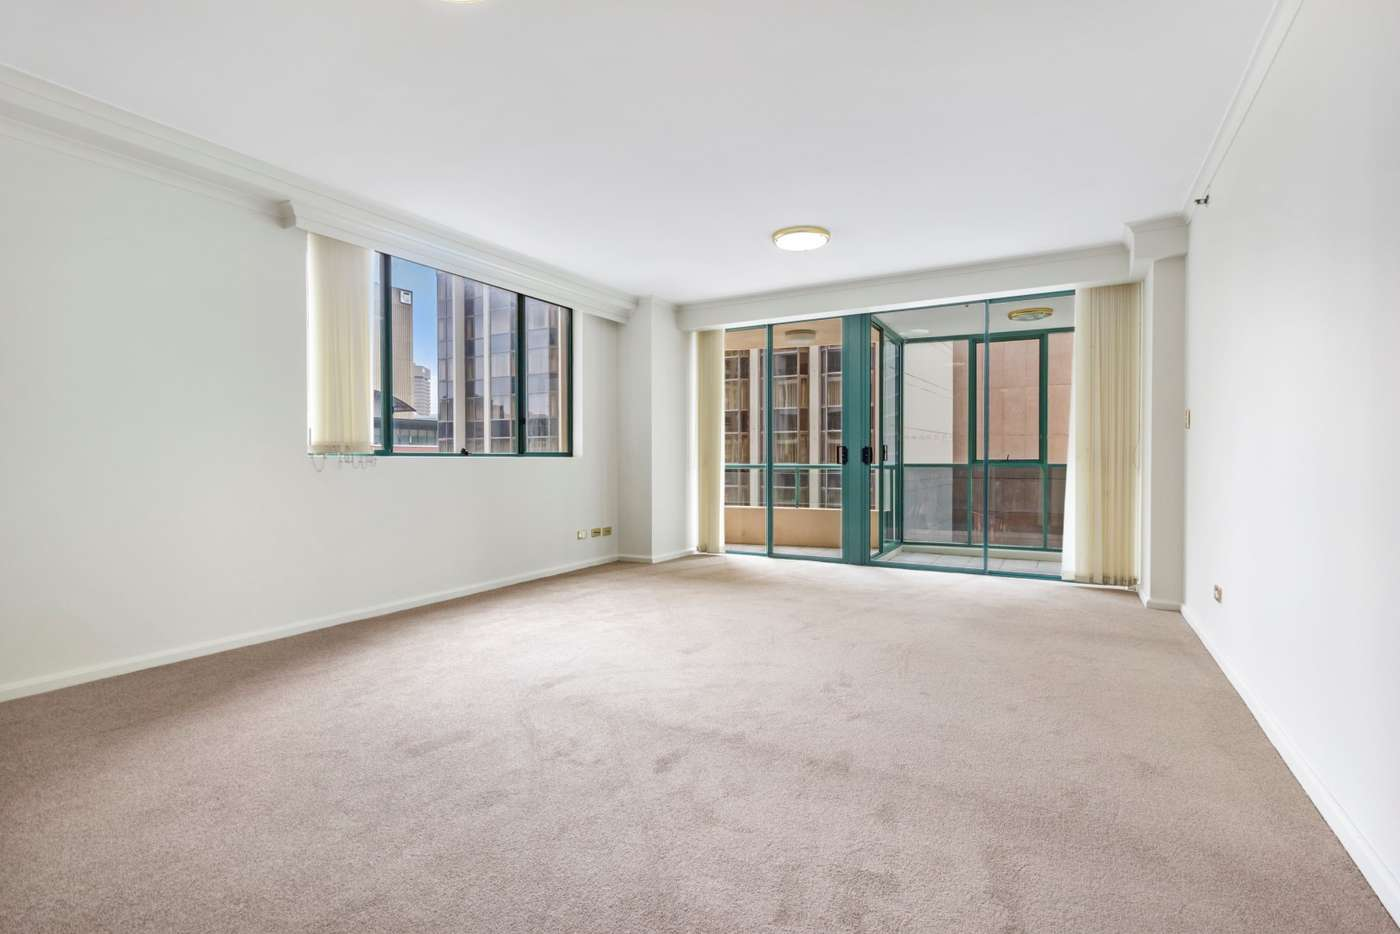 Main view of Homely apartment listing, 22/414 Pitt Street, Sydney NSW 2000